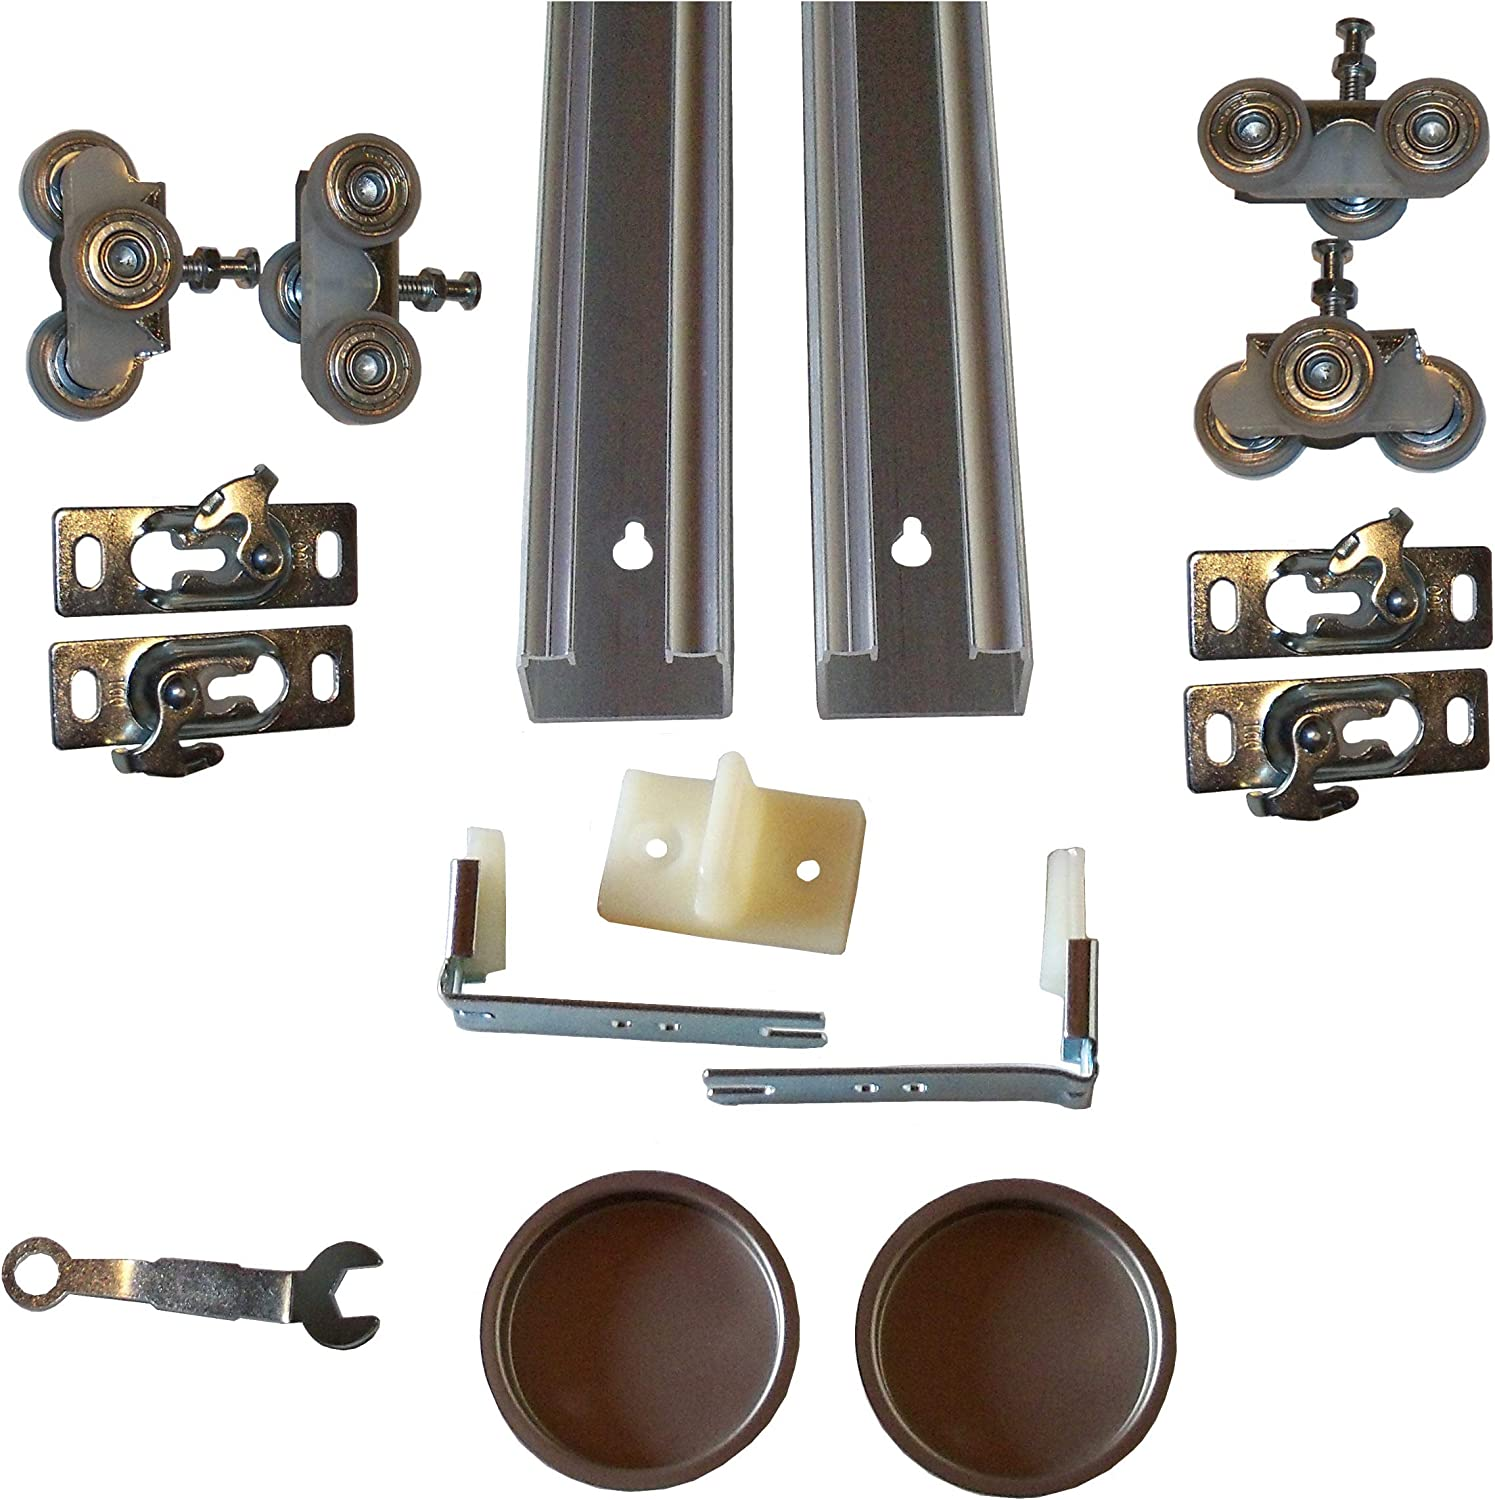 Series 2 Bypass Track and inch New Orleans Mall 60 Hardware Door Japan Maker New System